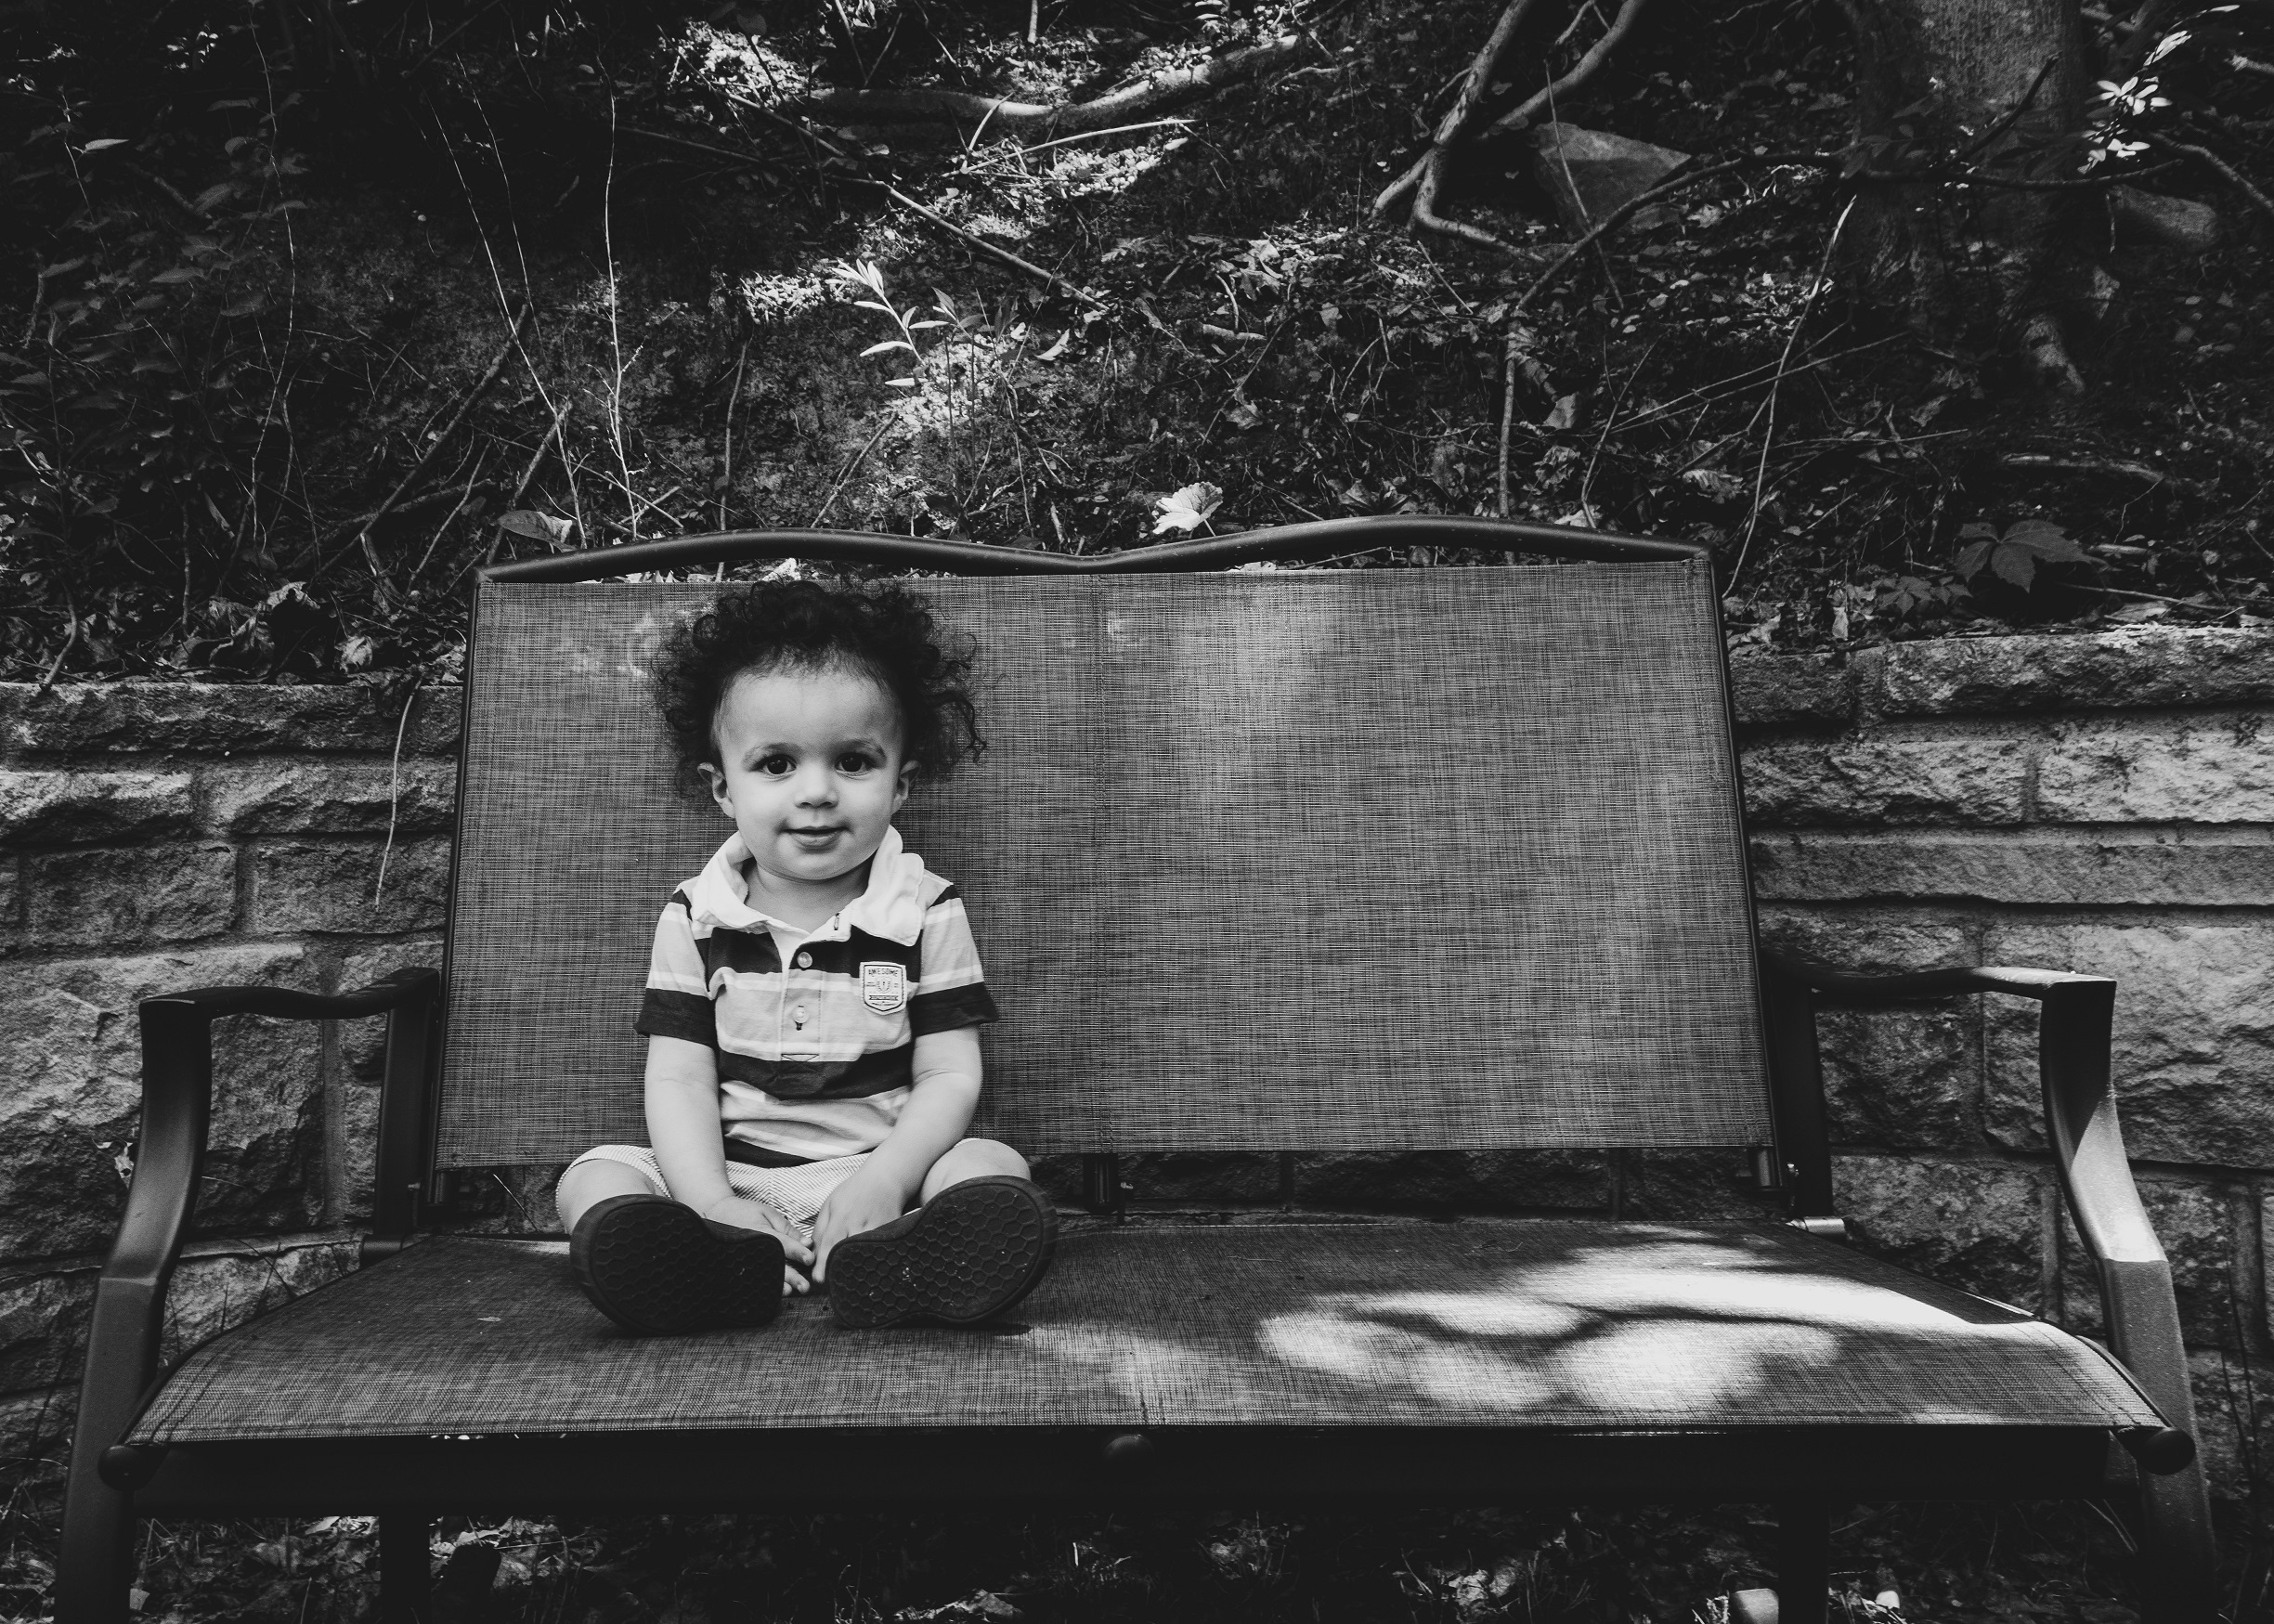 Toddler in black and white